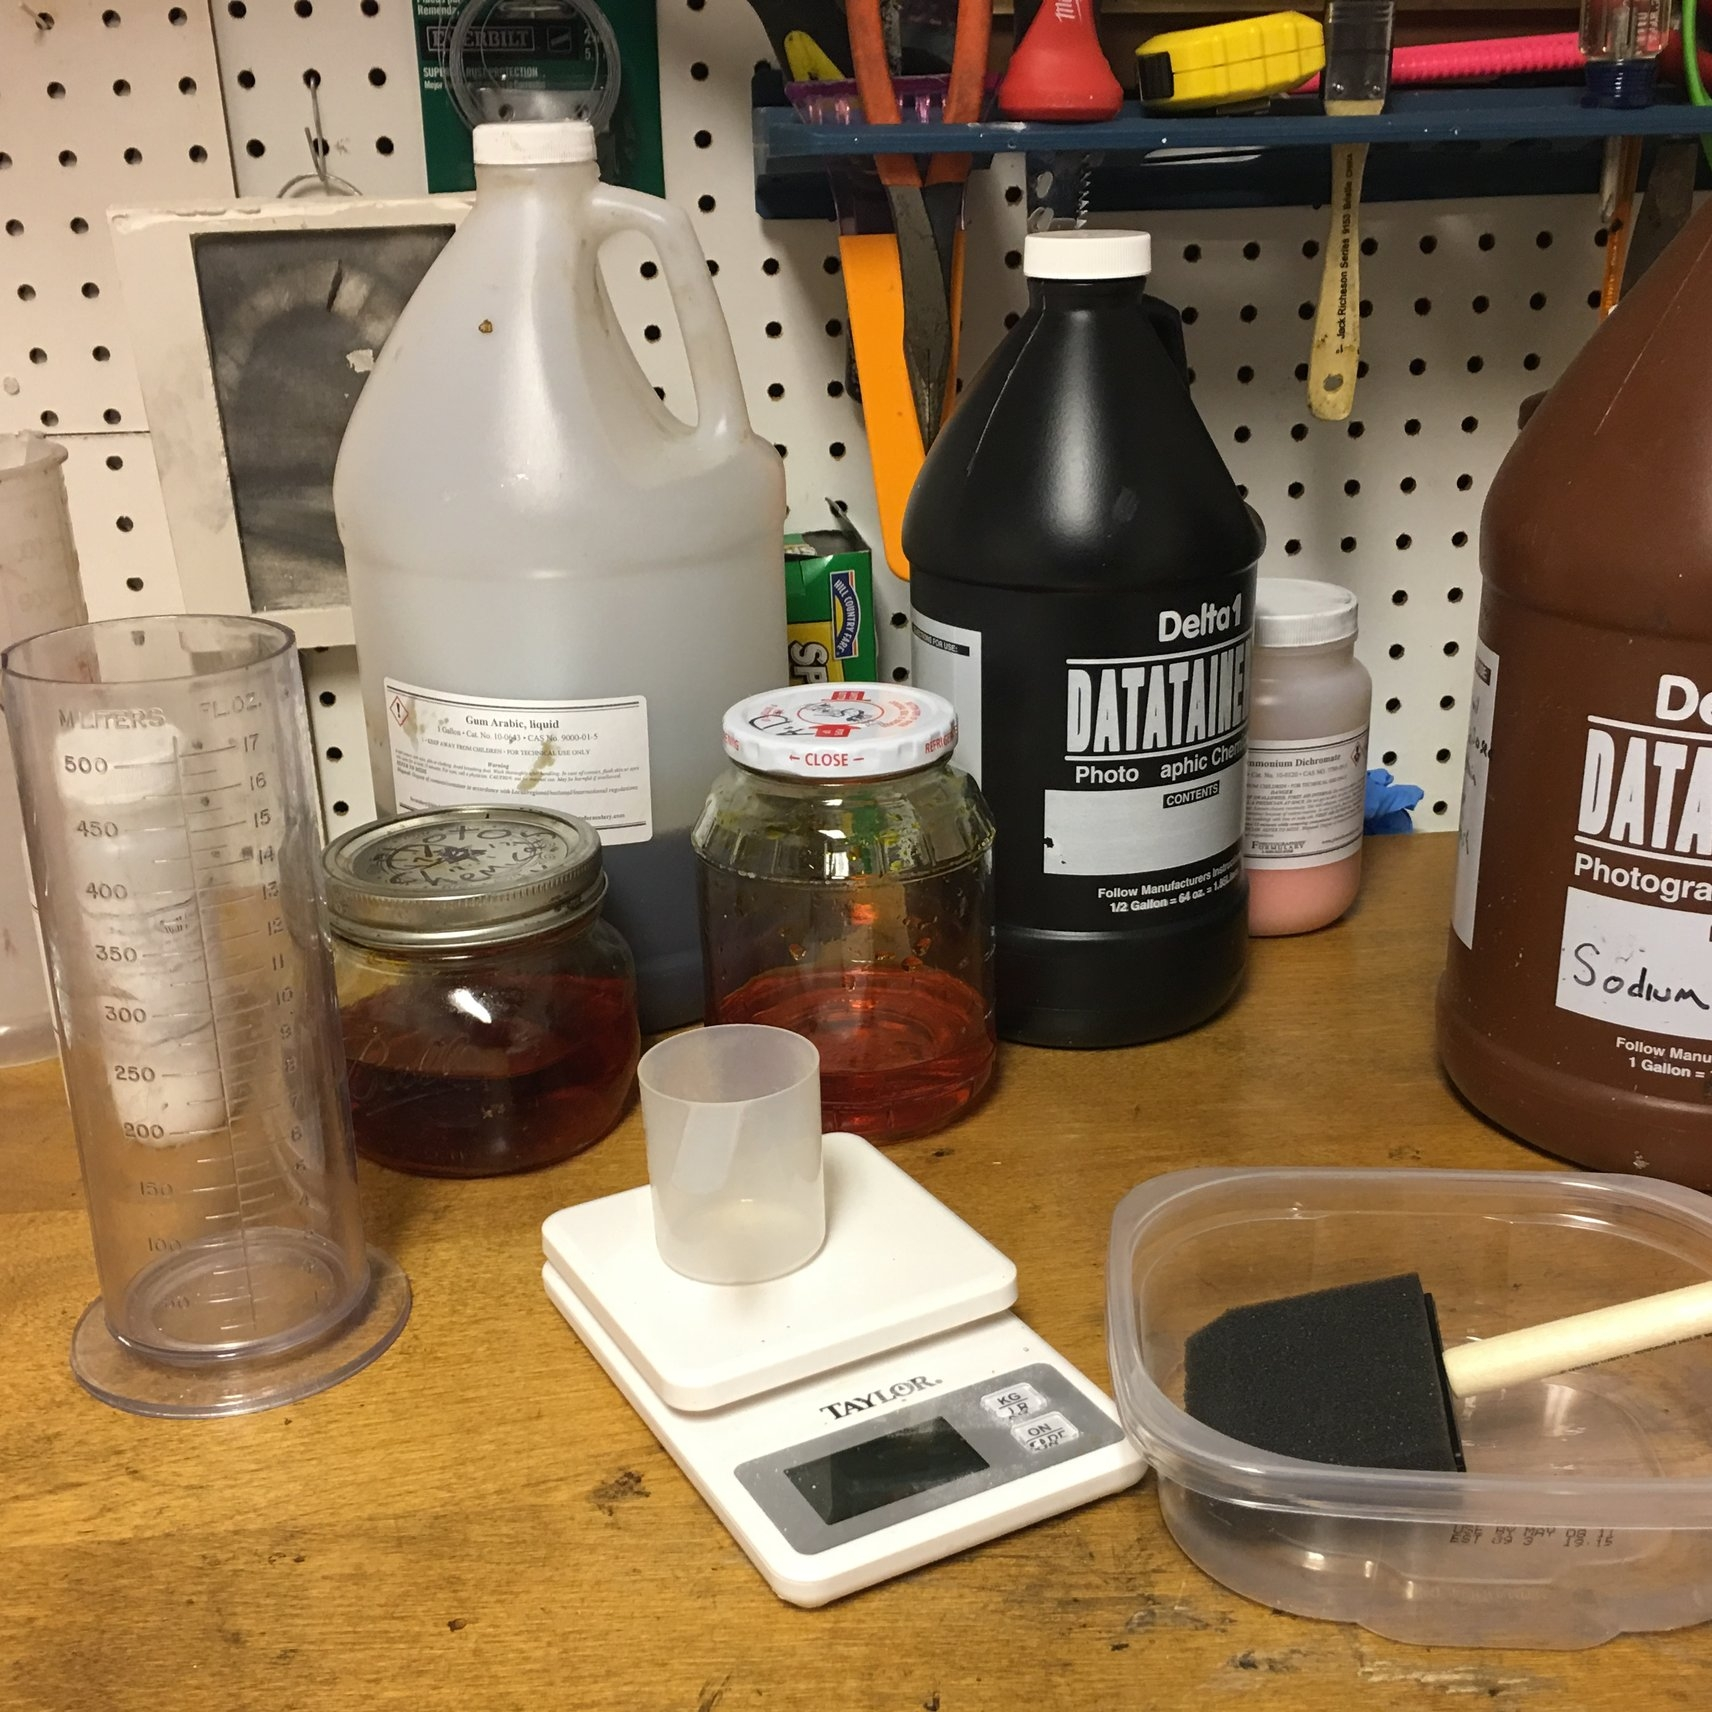 Some chemicals used in alternative photographic processes.